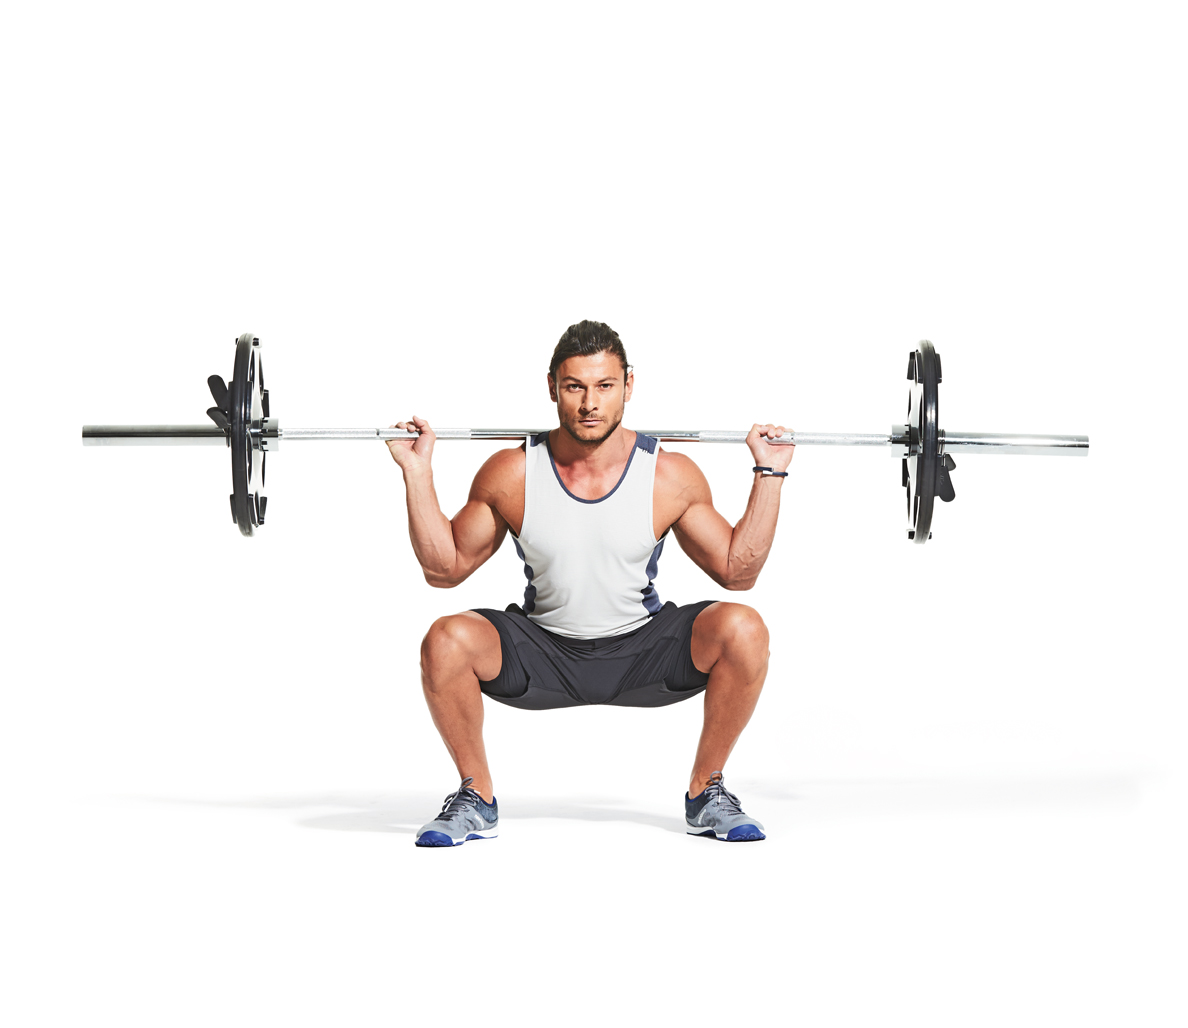 Miraculous The 30 Best Muscle Building Leg Exercises Of All Time Gmtry Best Dining Table And Chair Ideas Images Gmtryco